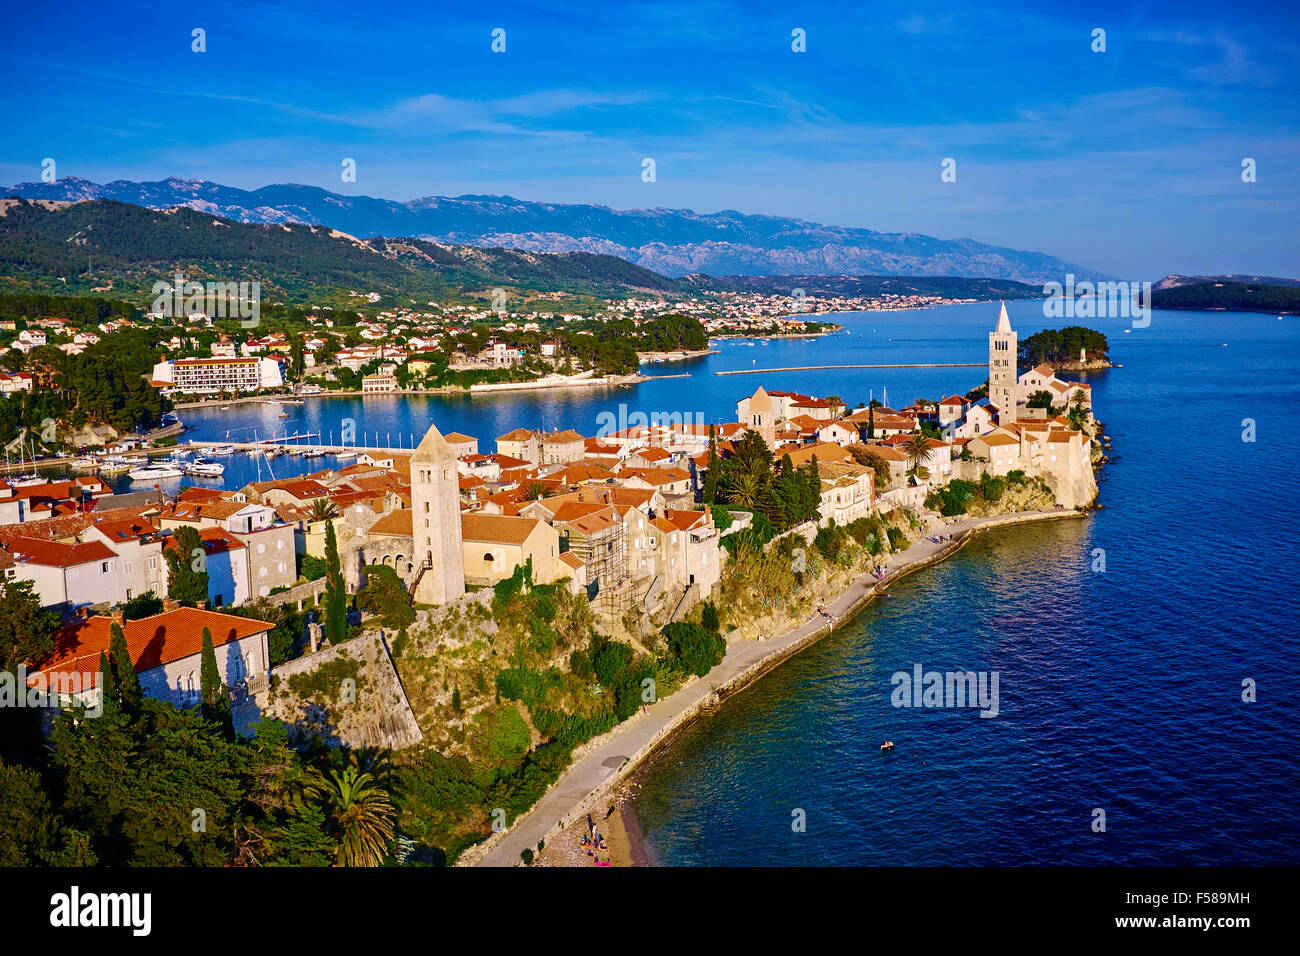 Croatia, Kvarner bay, island and city of Rab - Stock Image